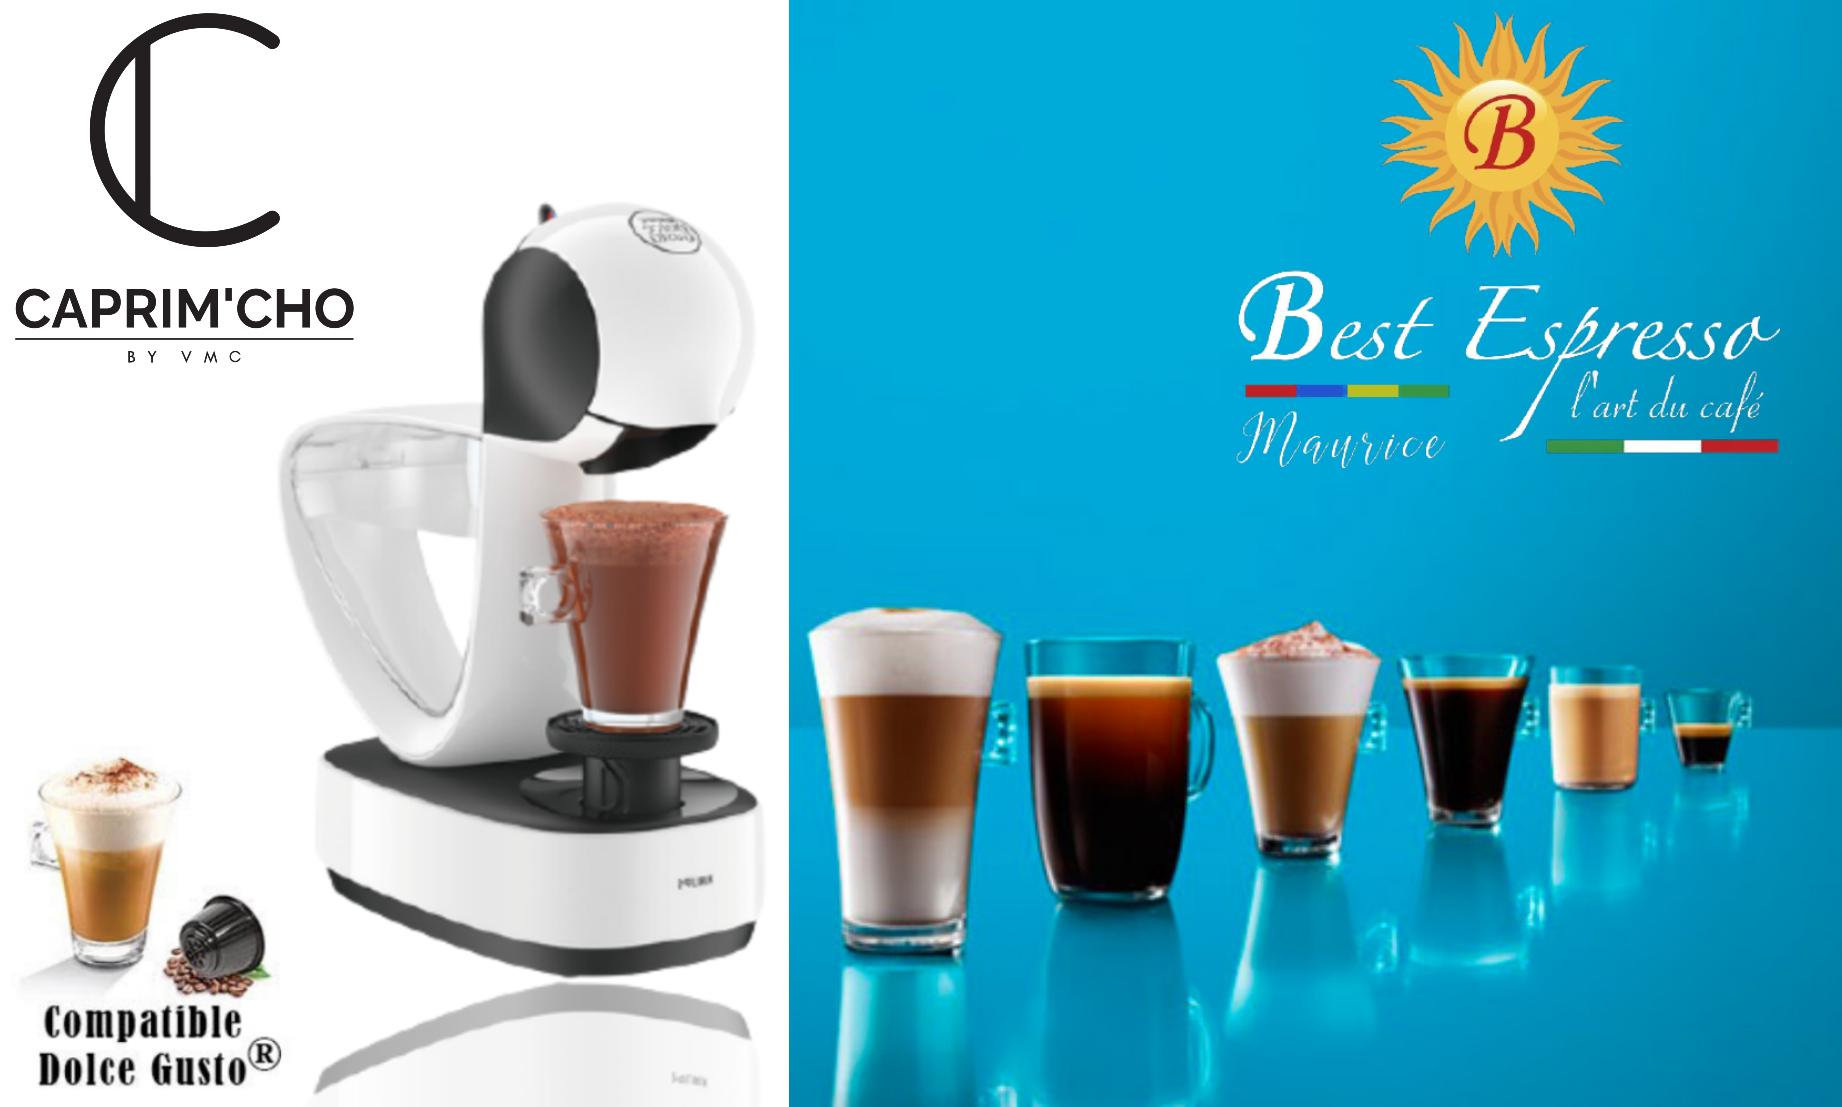 Best espresso compatible dolce gusto 1